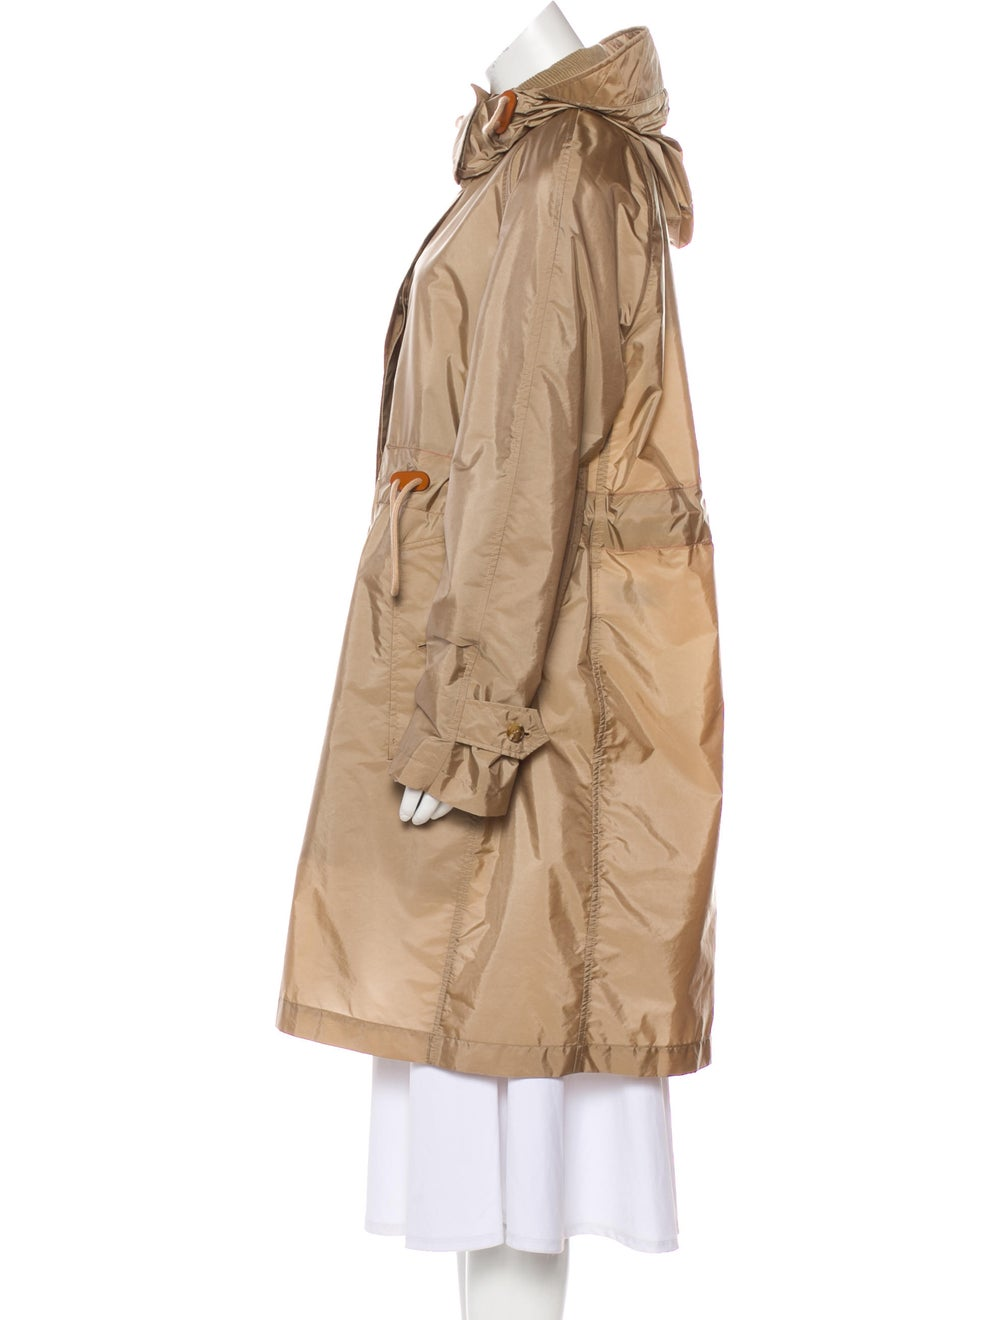 Burberry Knee-Length Trench Coat Beige - image 2